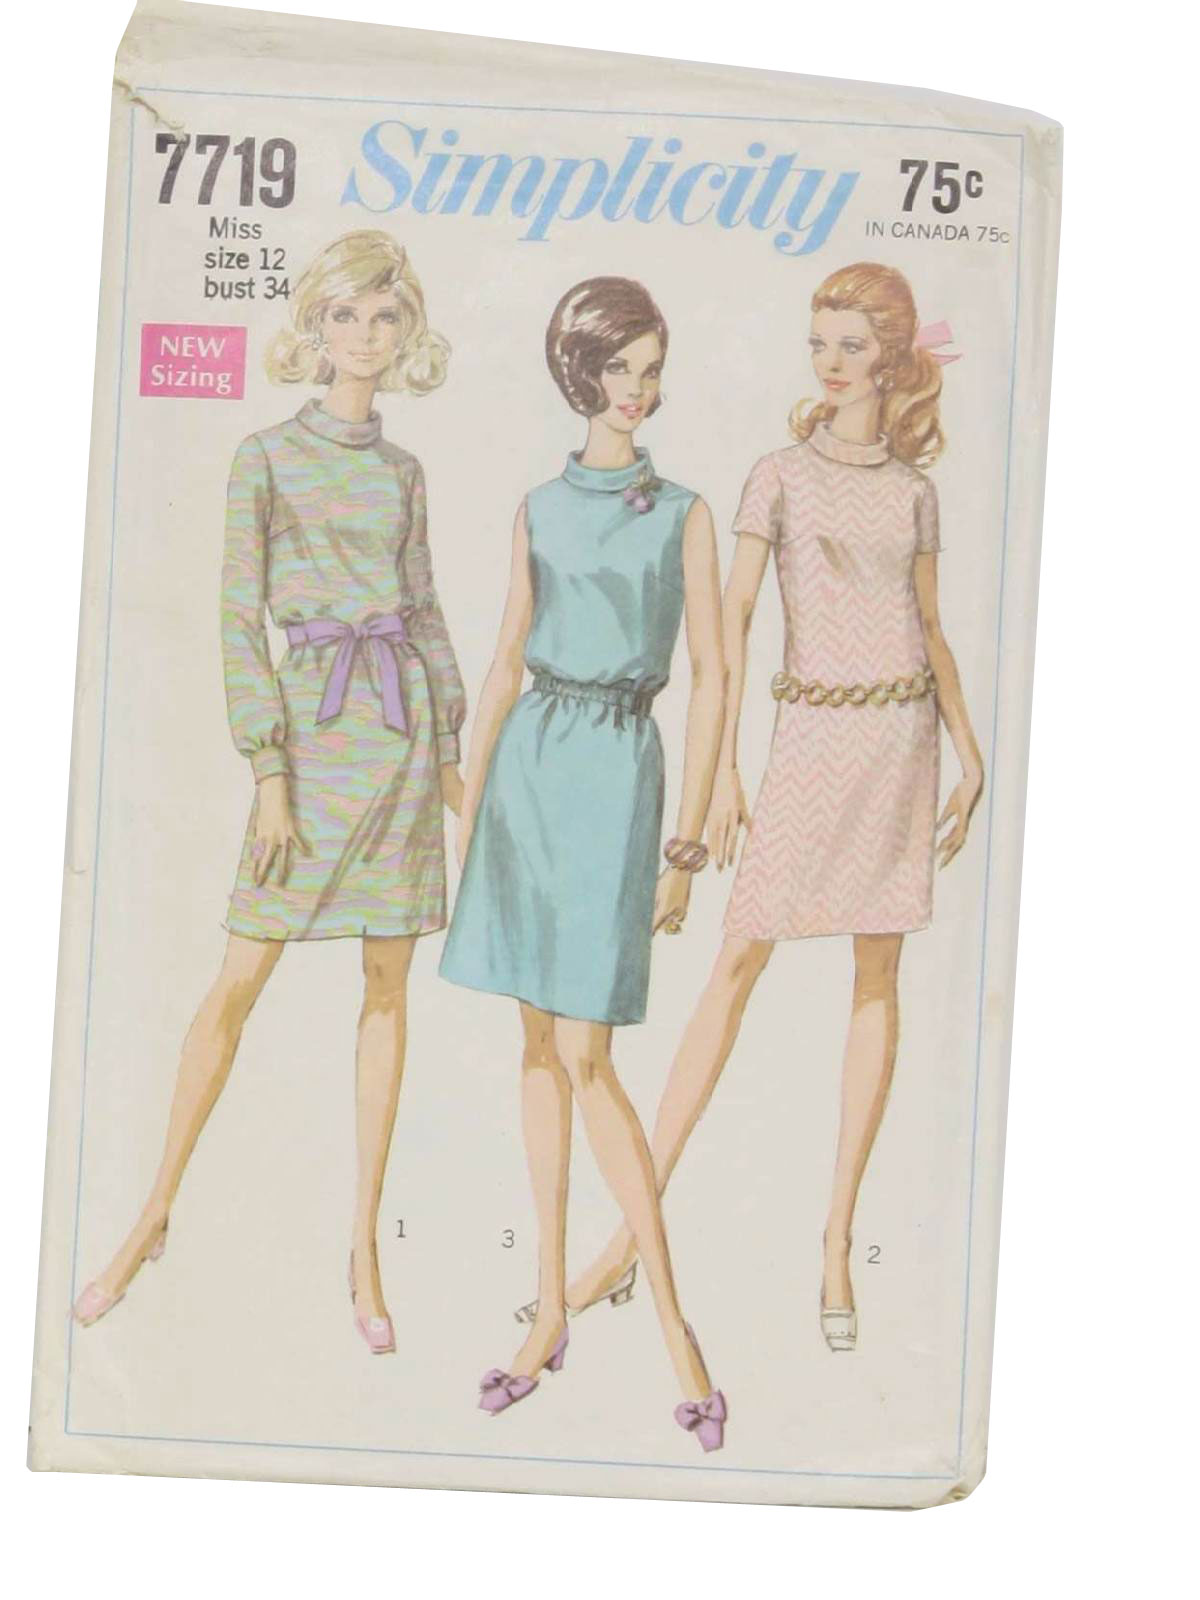 1960s sewing pattern 1968 simplicity pattern no 7719 womens 1960s sewing pattern 1968 simplicity pattern no 7719 womens sewing pattern for misses dress the dress with bias roll collar and back zipper has jeuxipadfo Choice Image